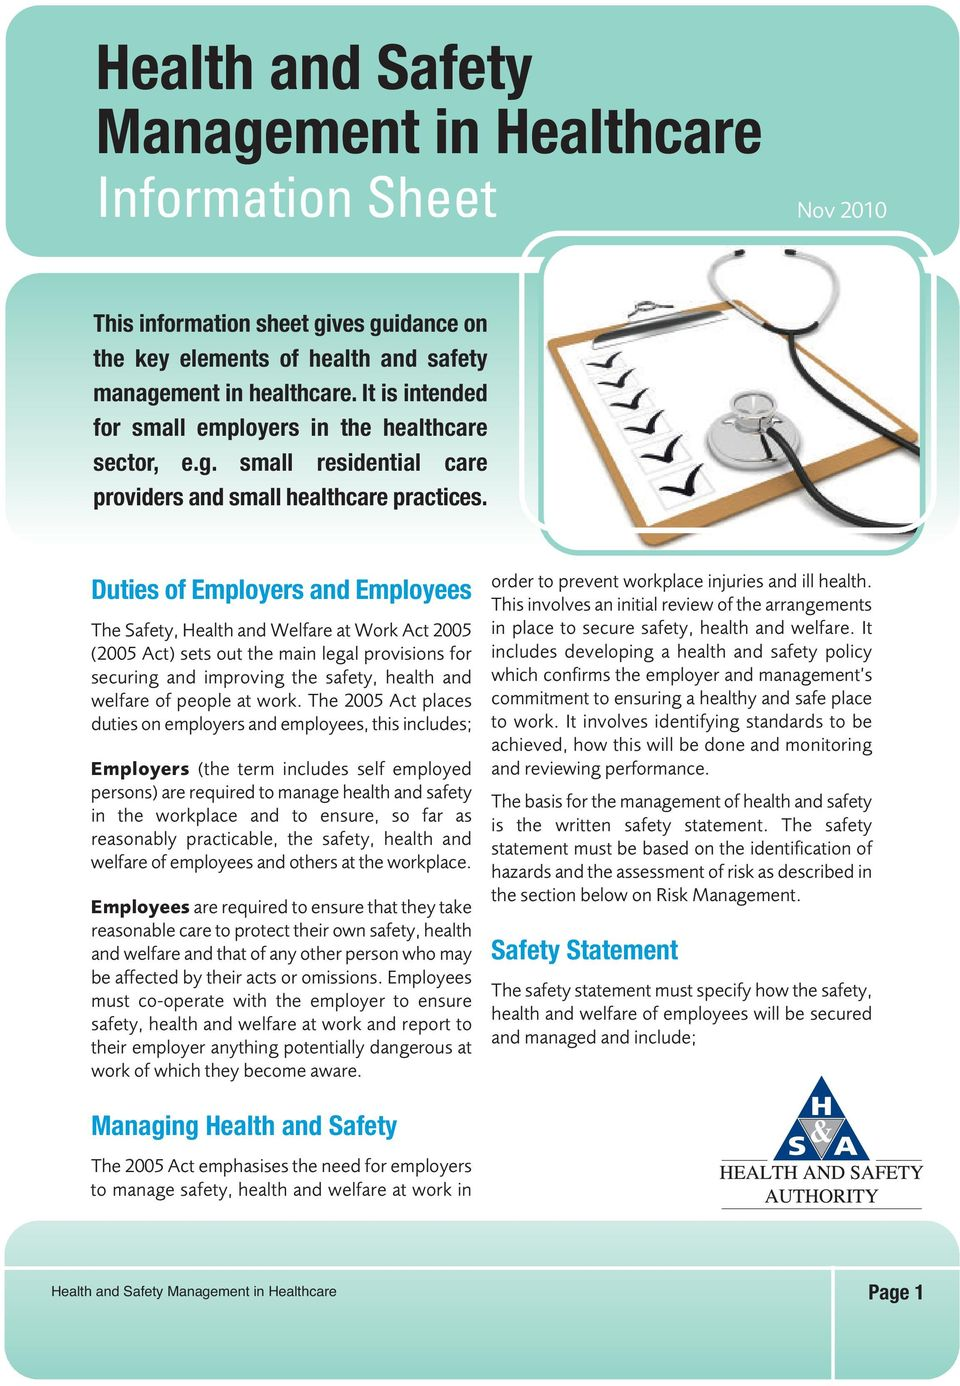 Duties of Employers and Employees The Safety, Health and Welfare at Work Act 2005 (2005 Act) sets out the main legal provisions for securing and improving the safety, health and welfare of people at